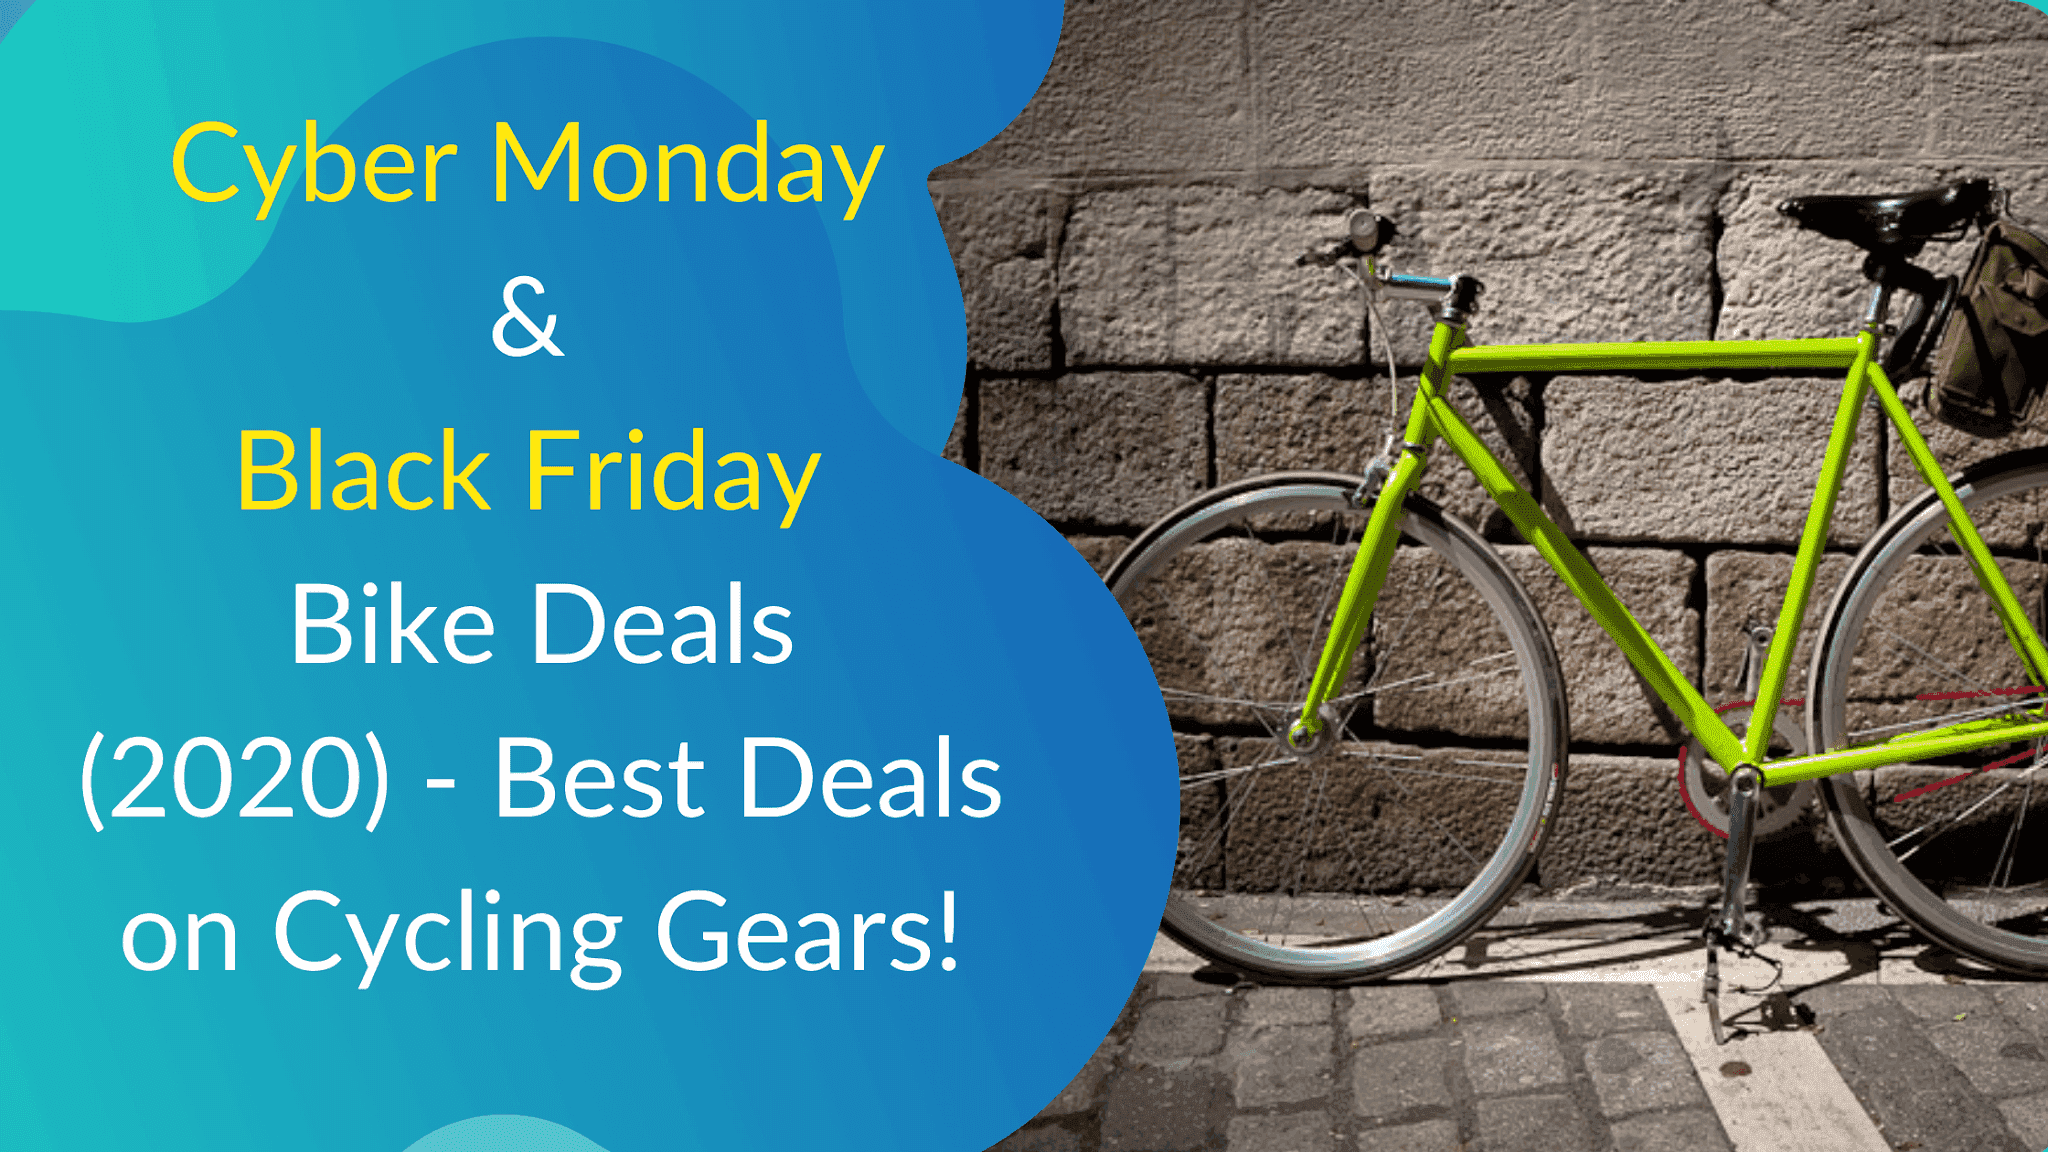 Cyber Monday and Black Friday Bike Deals